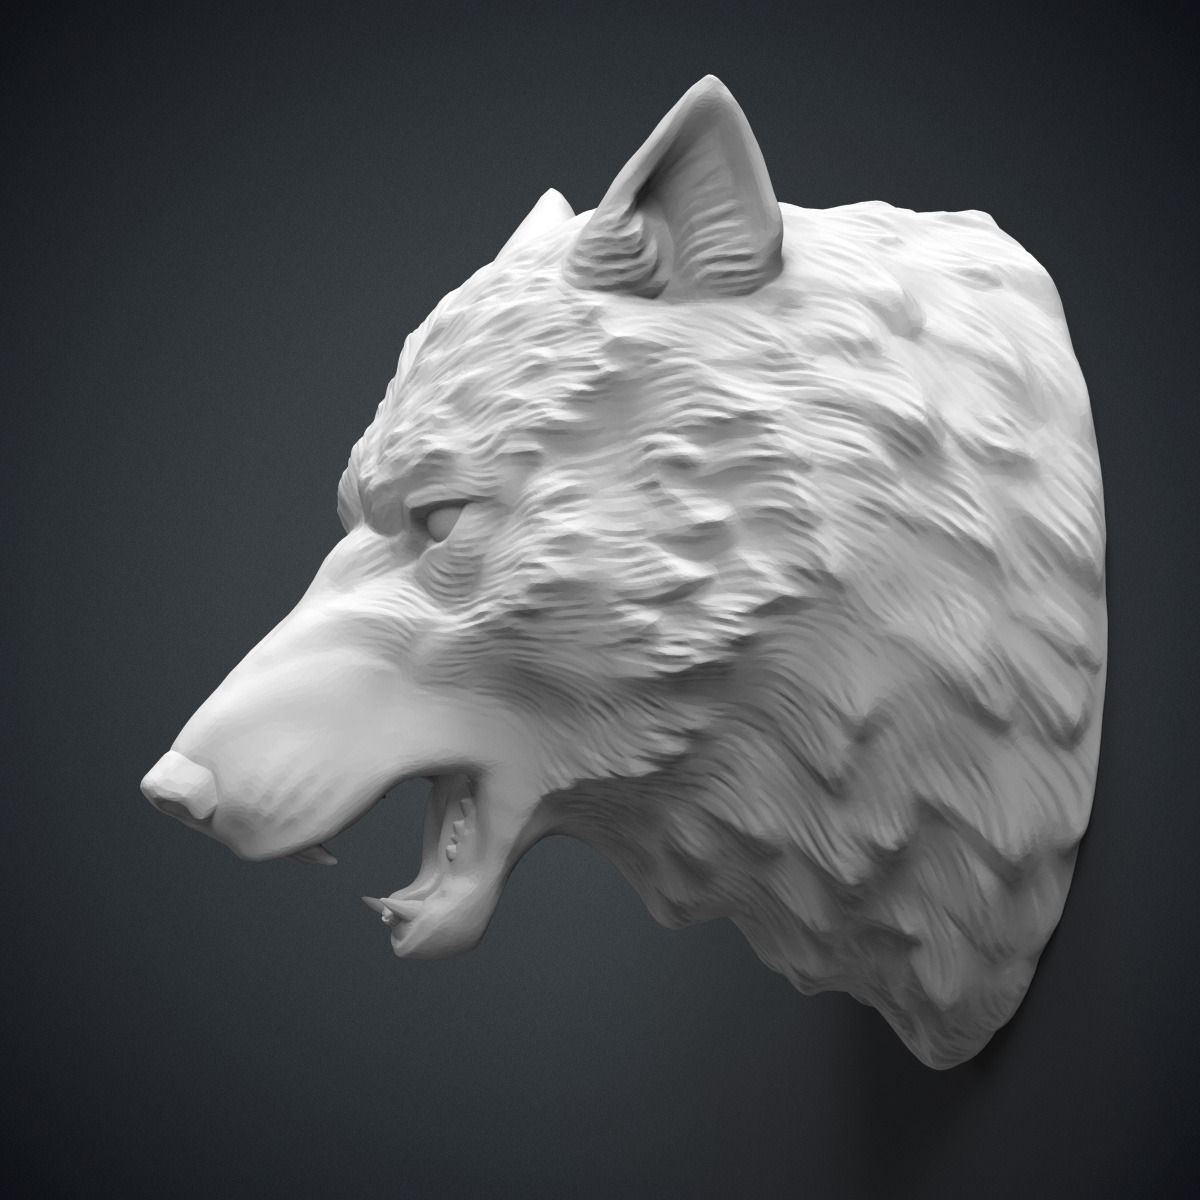 Wolf Head Sculpture 3D Model 3D Printable .obj .stl